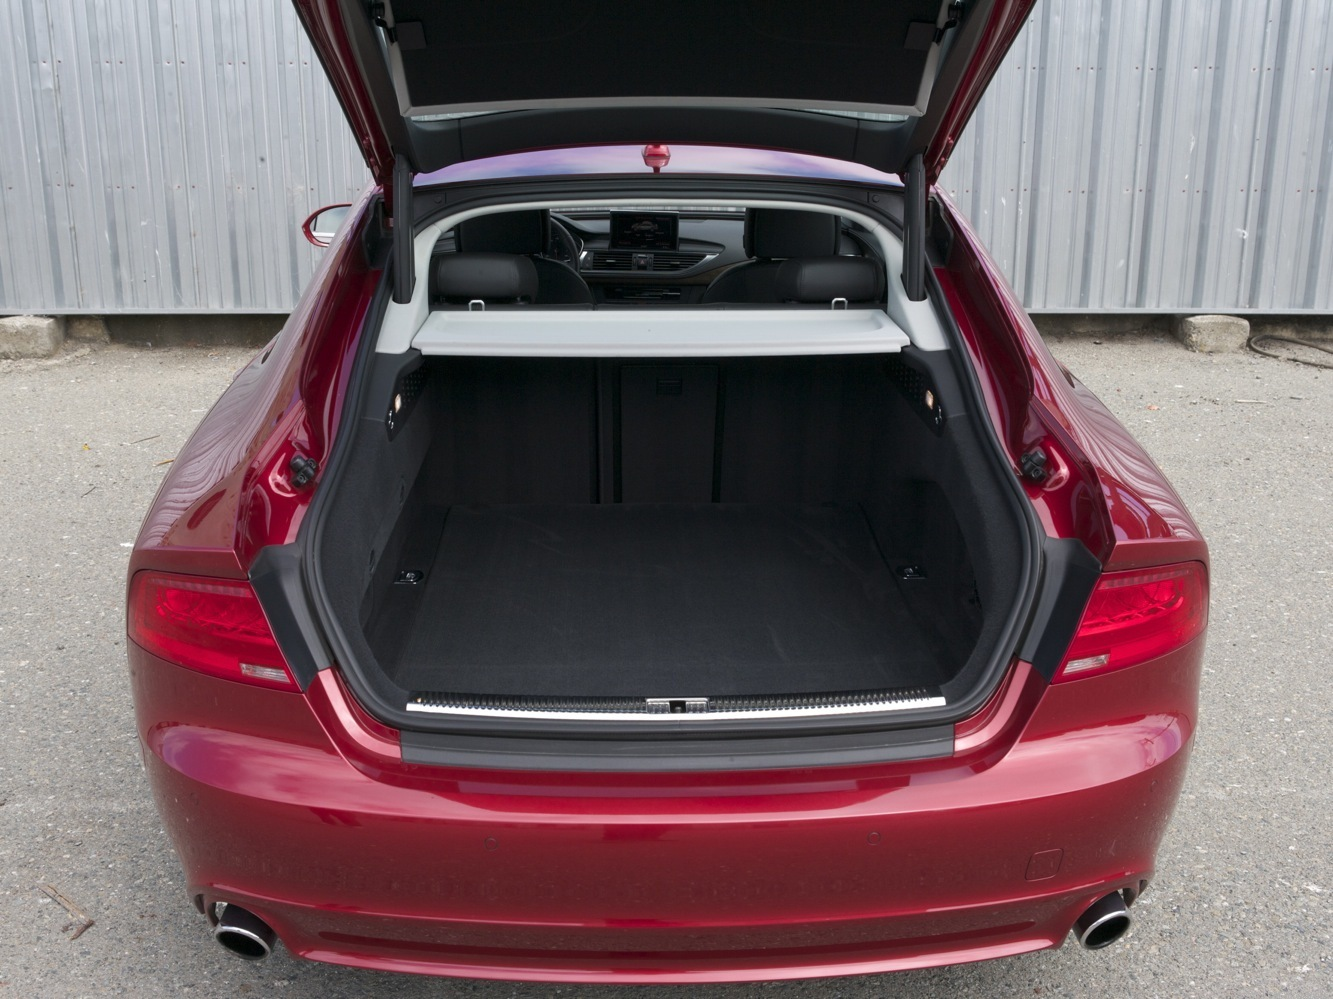 Audi A7 rear hatch